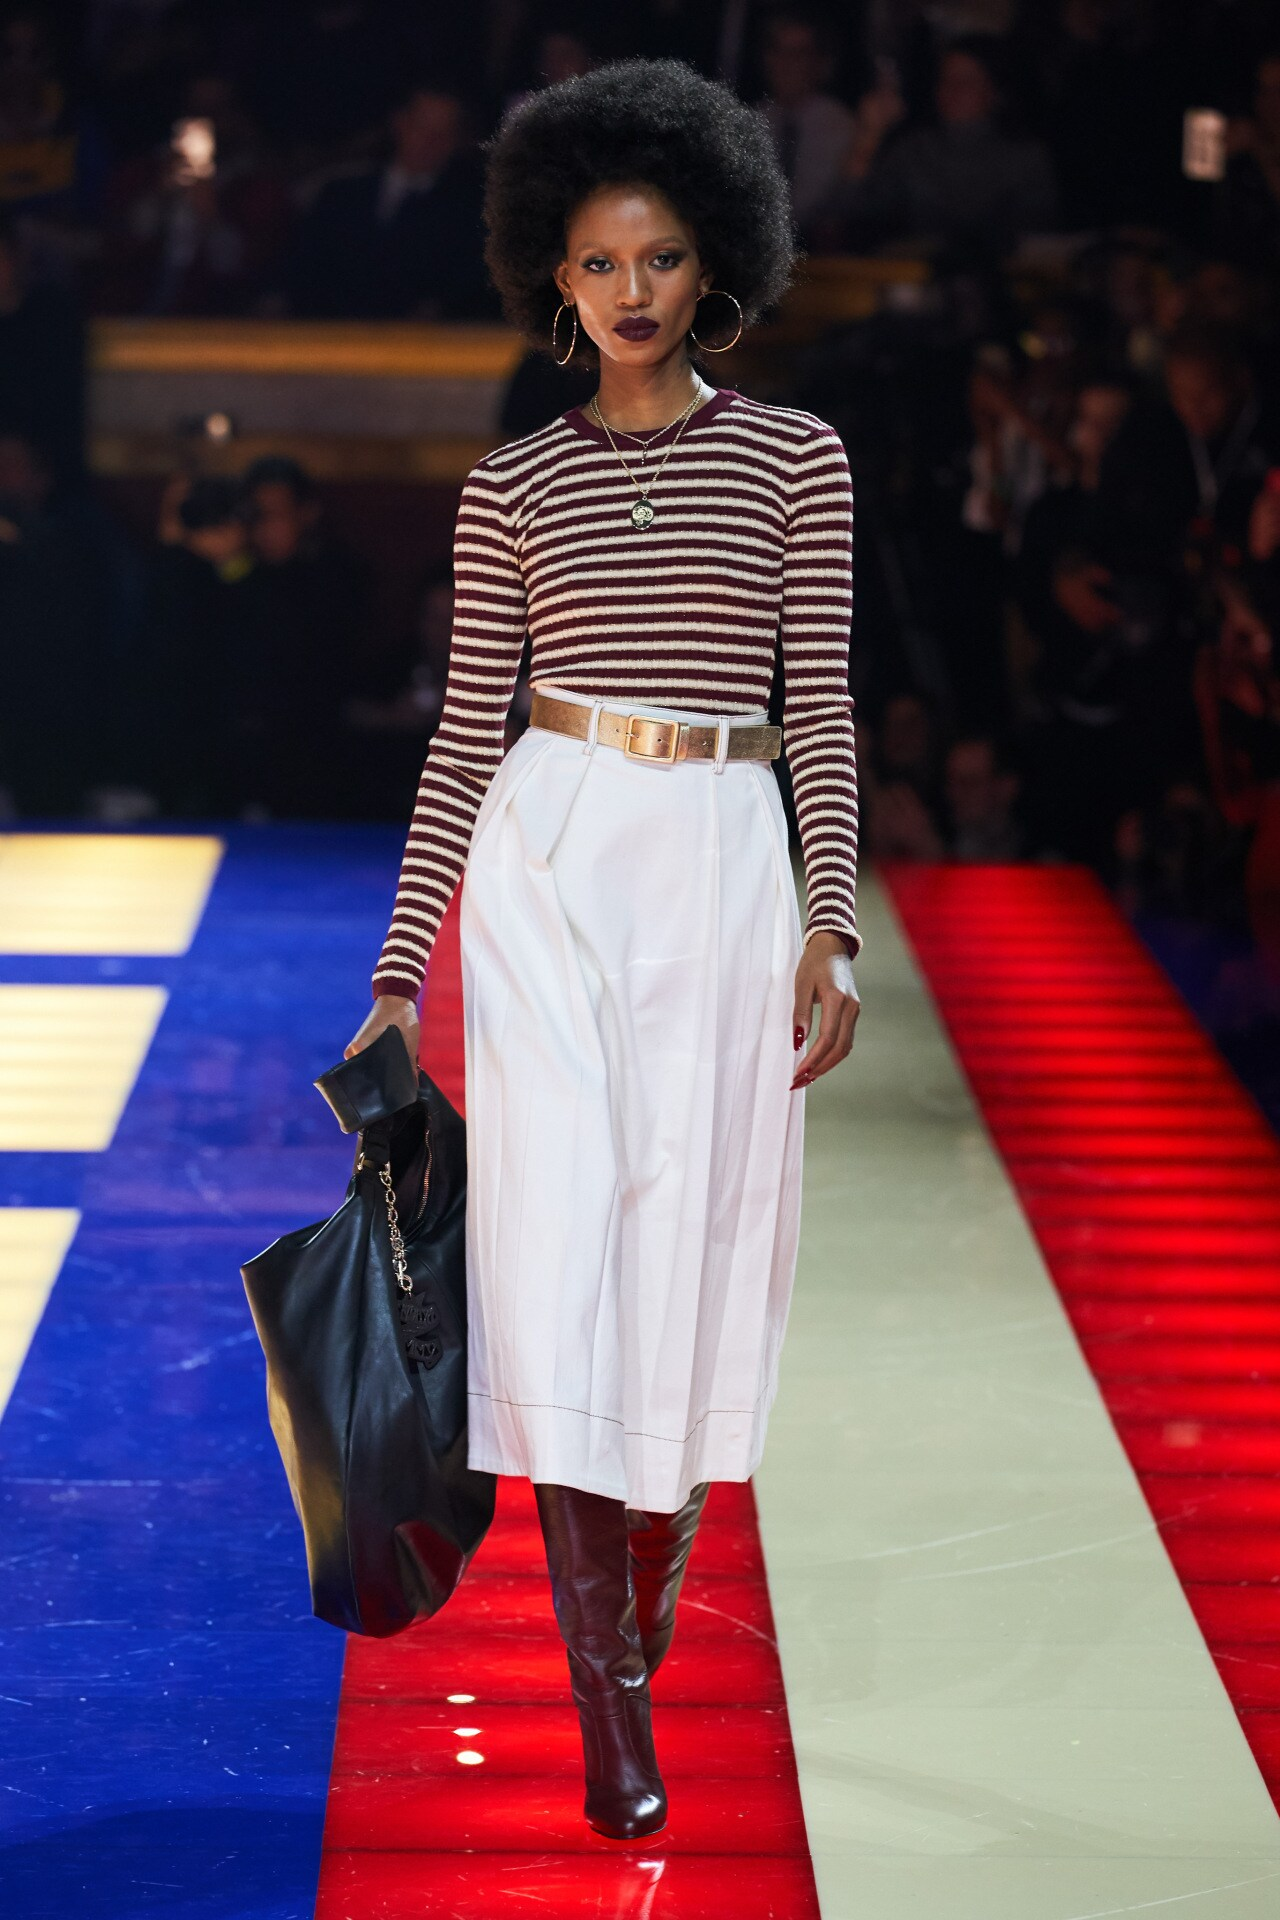 Tommy Hilfiger ready-to-wear spring/summer 2019